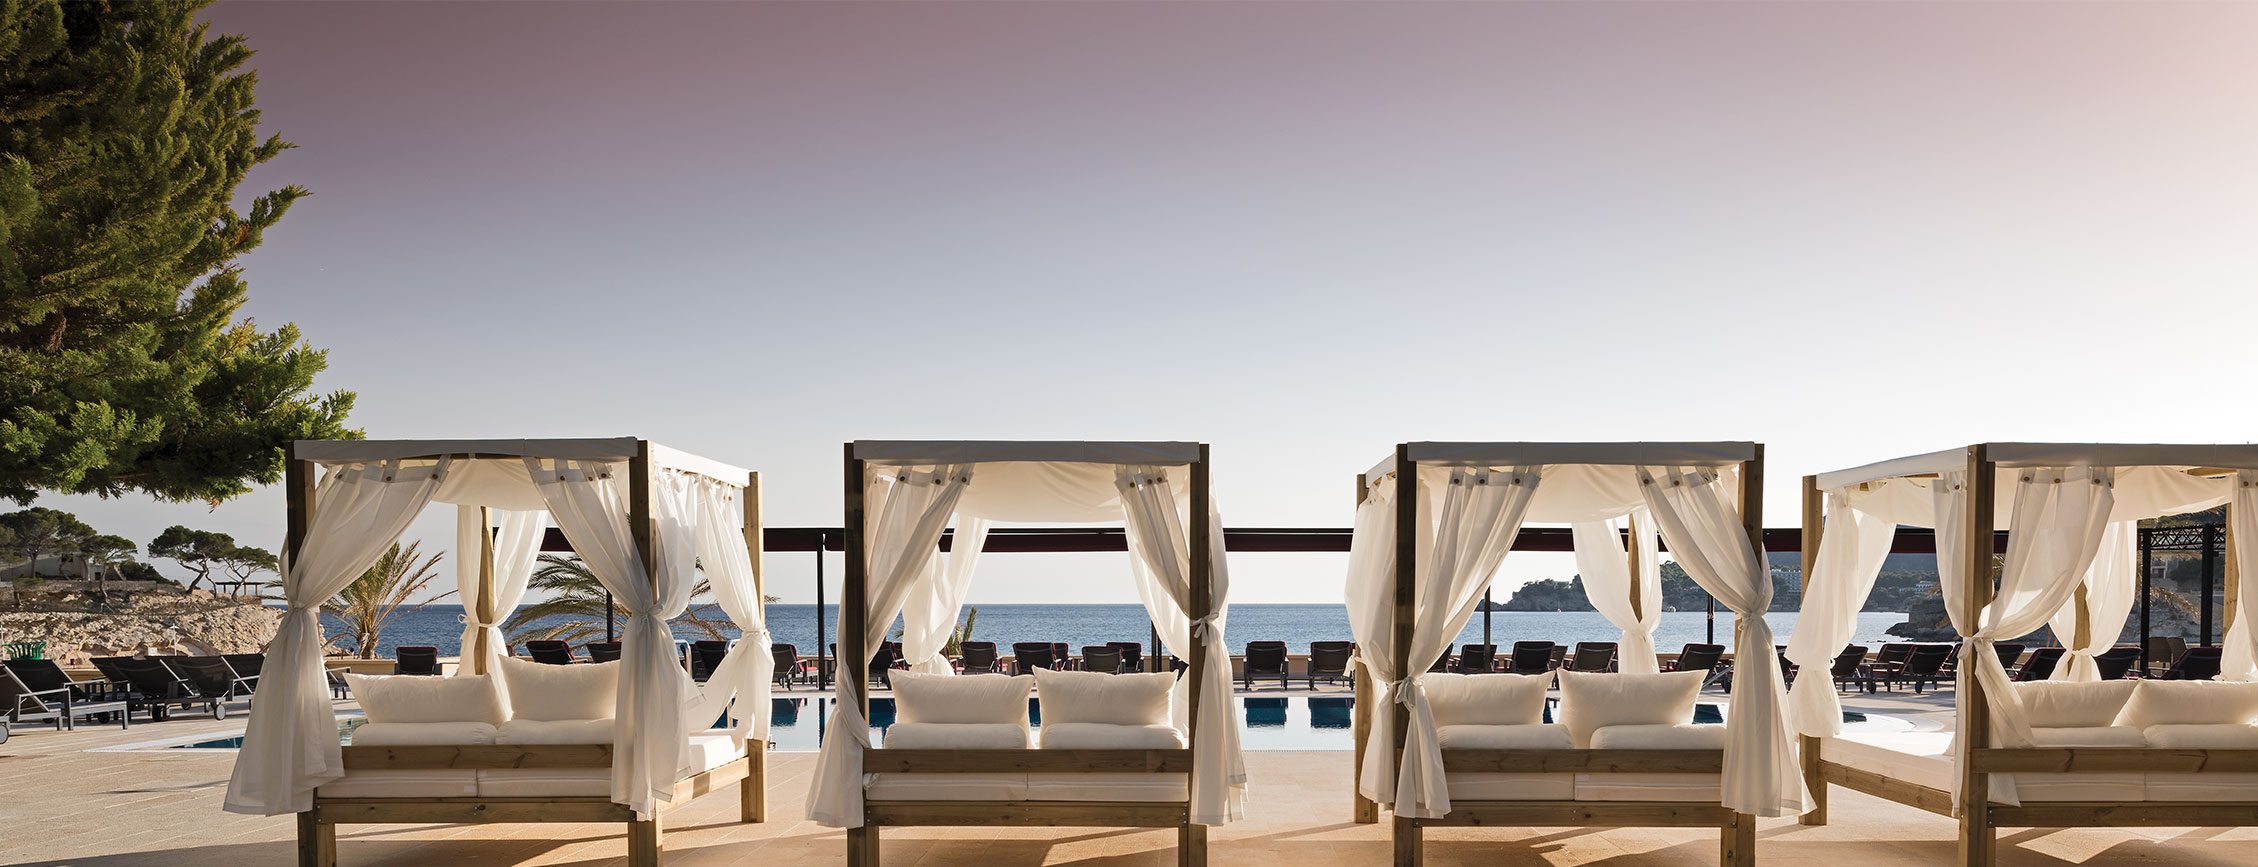 Preferred Club | Villamil Secrets Mallorca